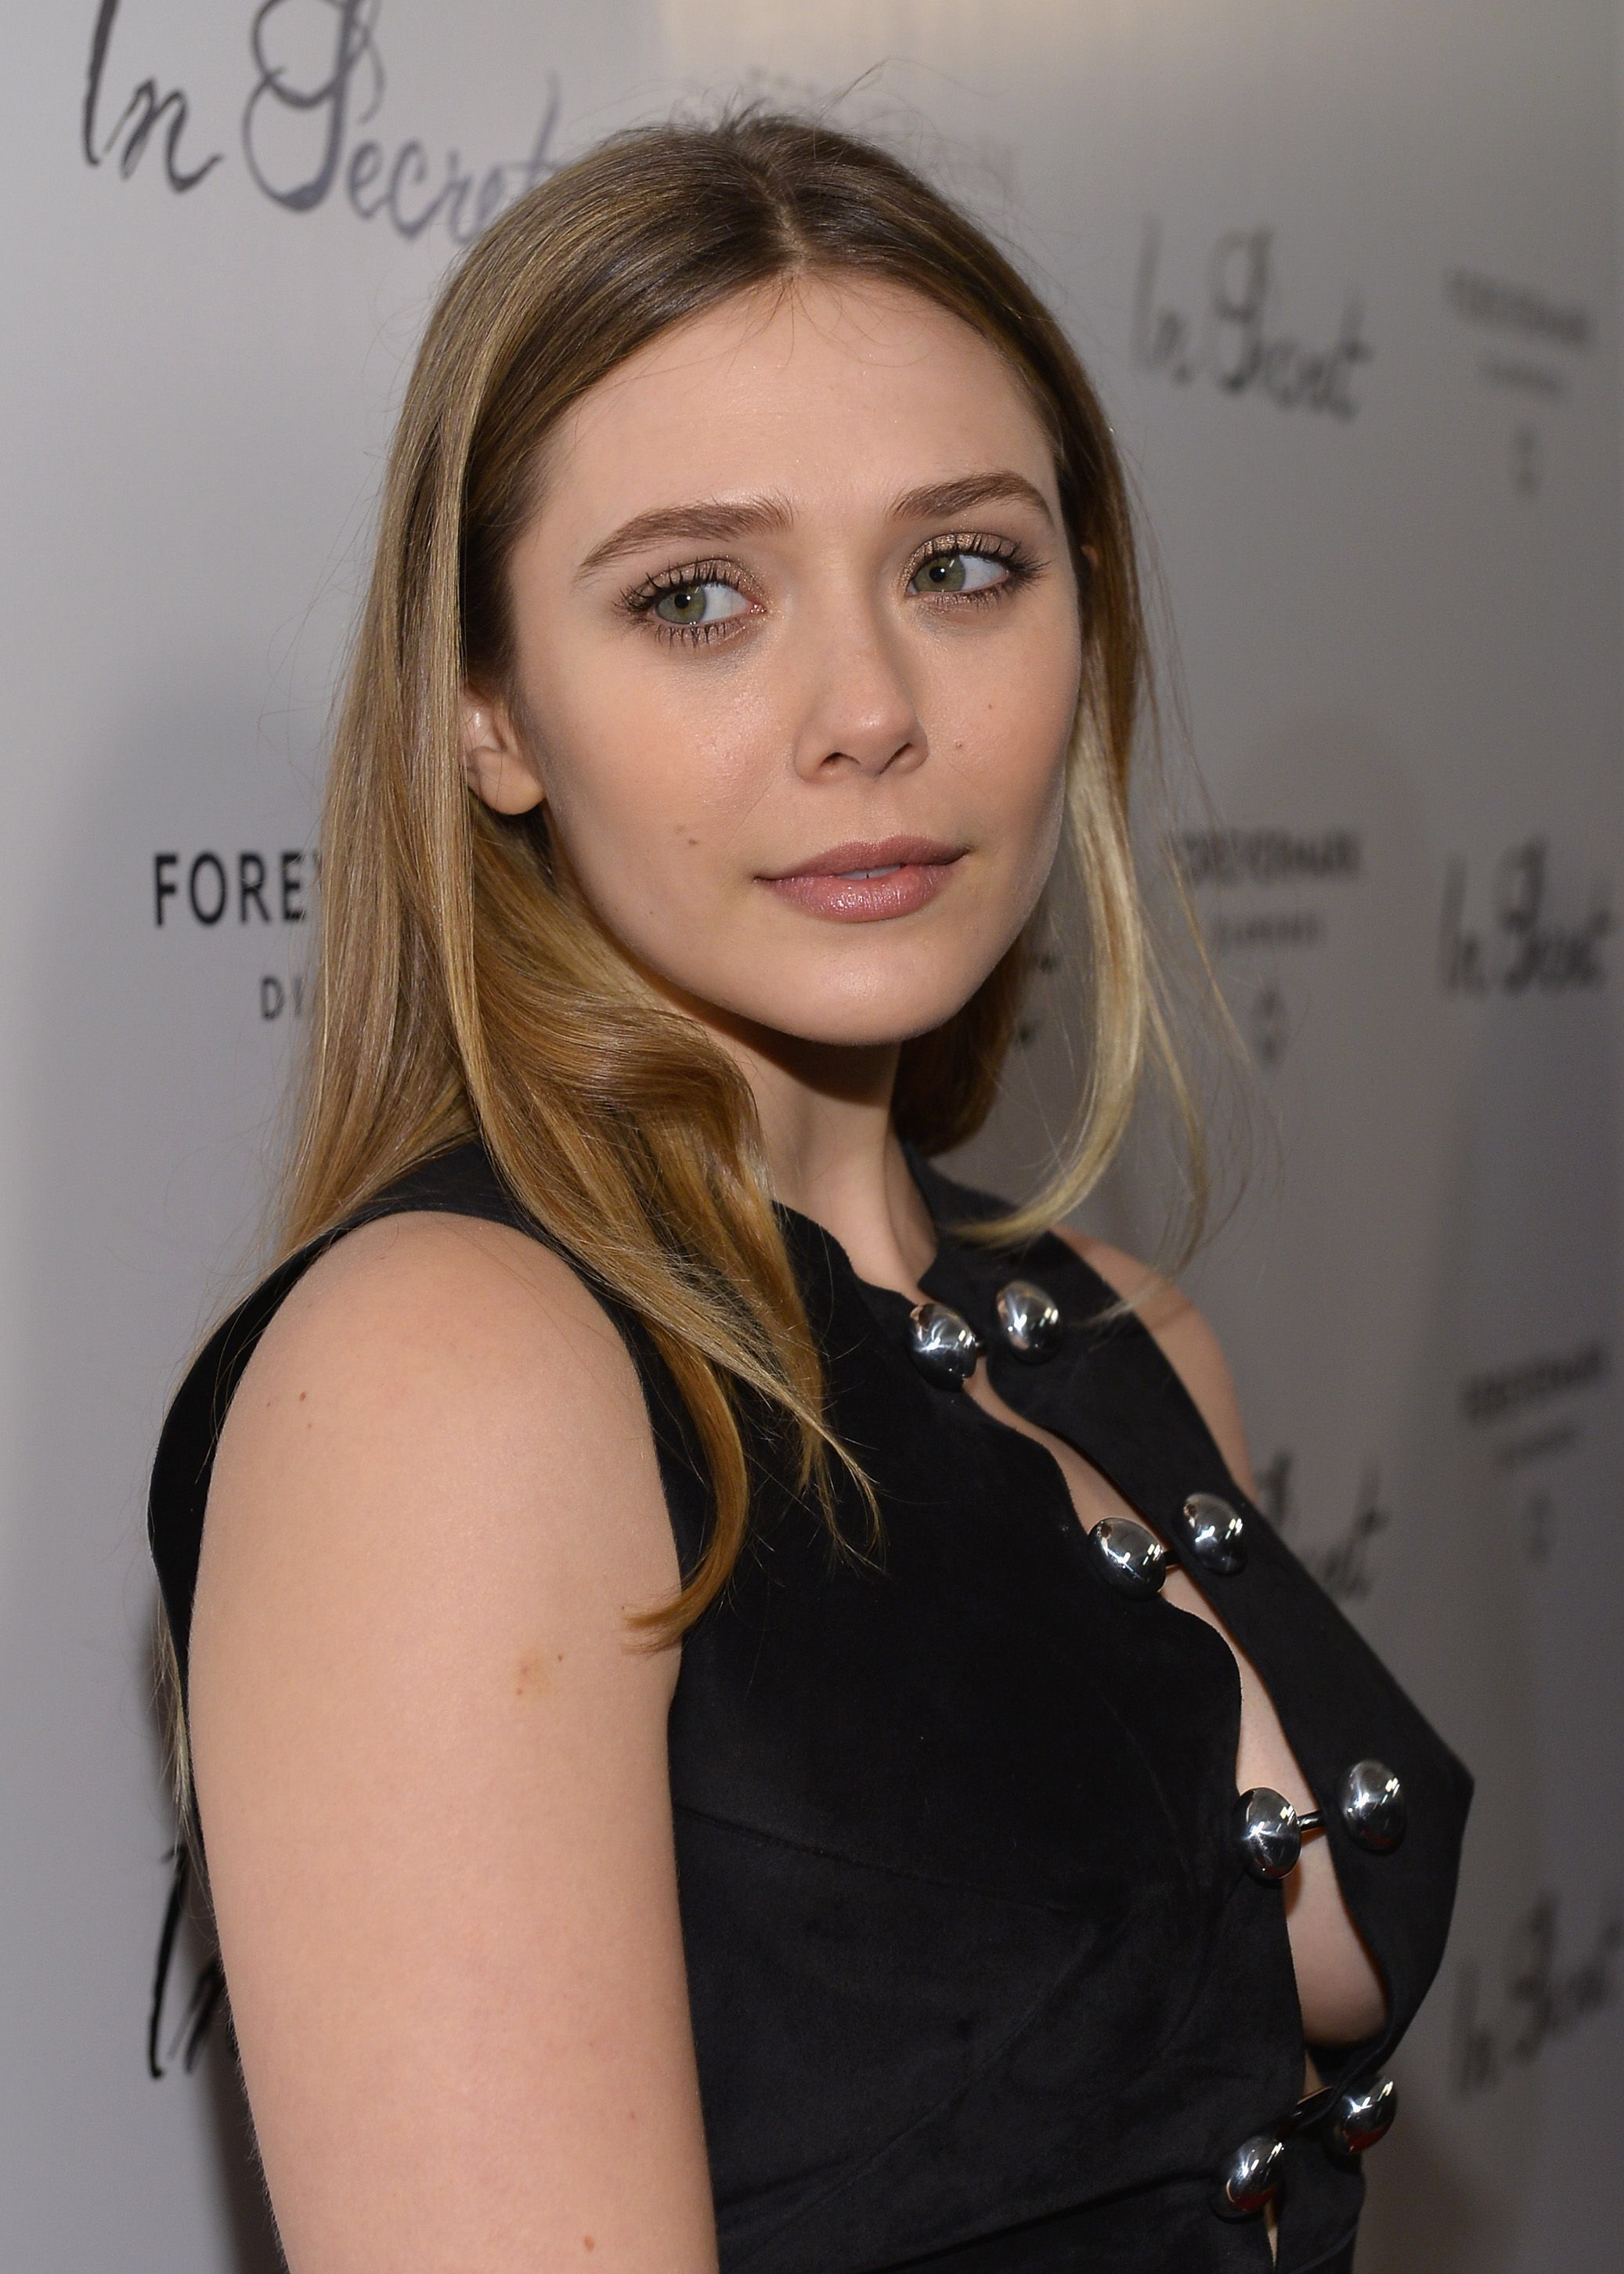 Cleavage Mary Kate Olsen naked (21 photos), Pussy, Cleavage, Feet, bra 2017